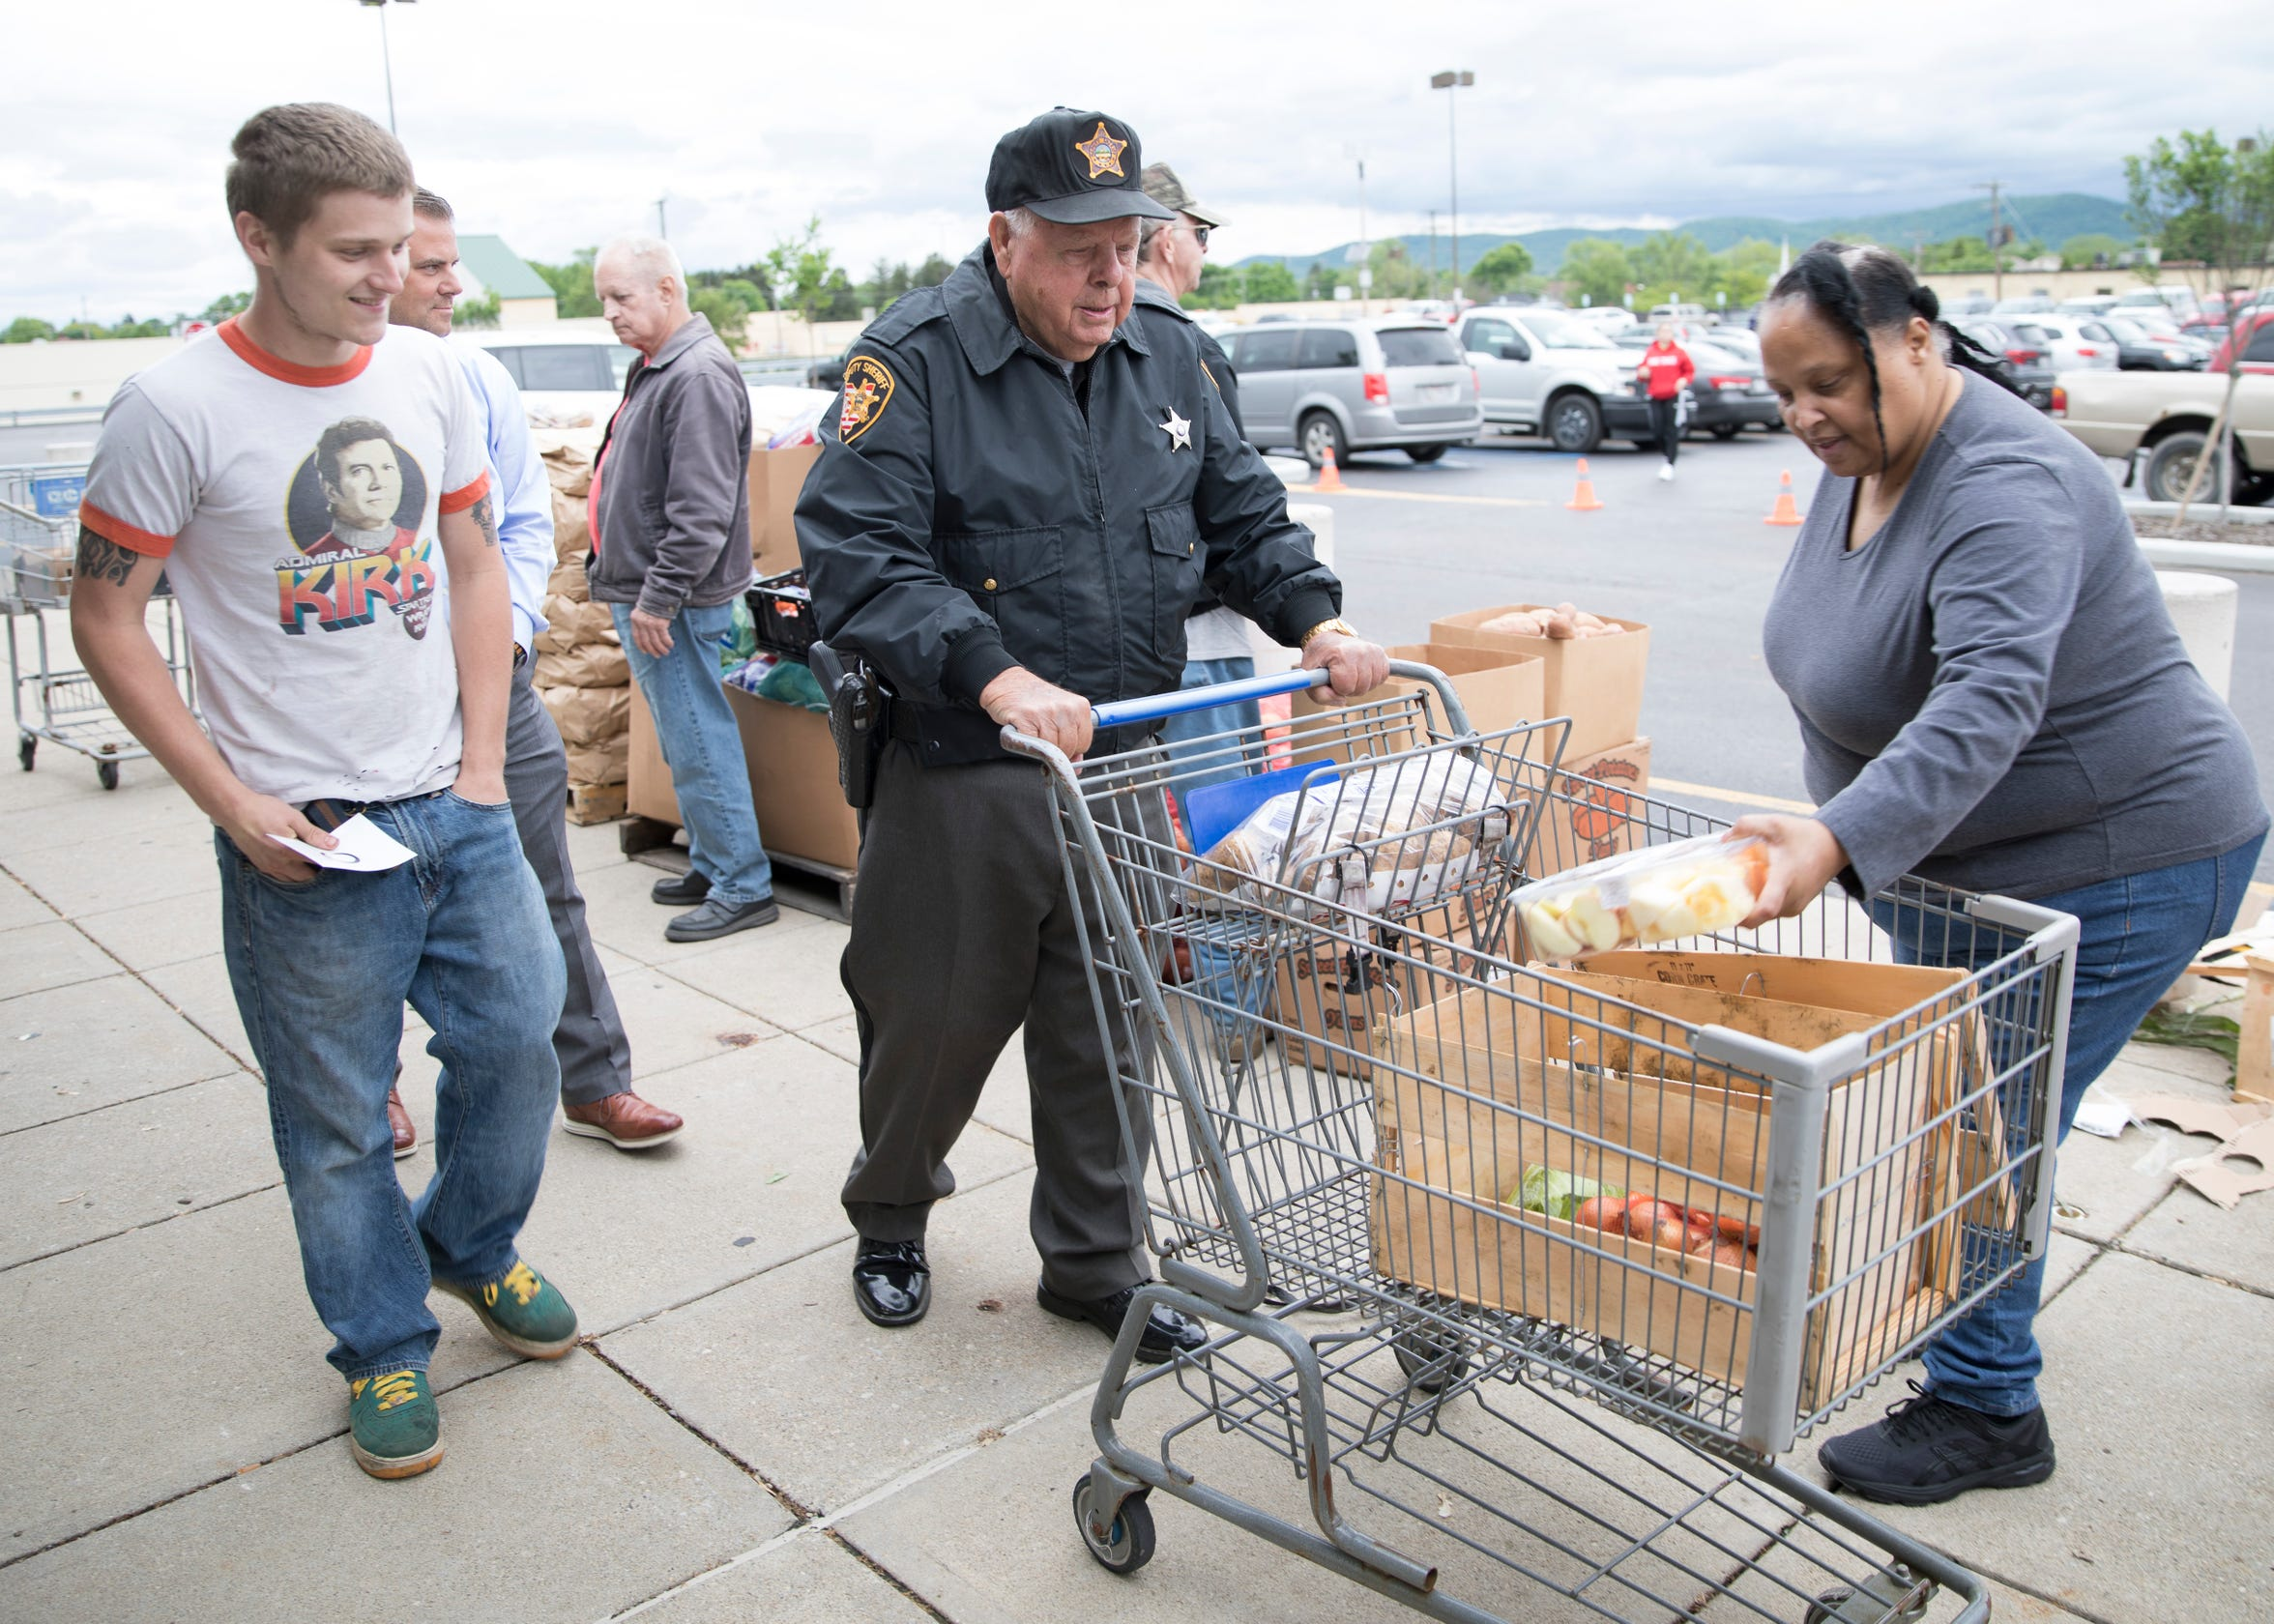 Doug Ray likes to stay active and help food market visitors like Buddy Staley get their food and assist them to their car.